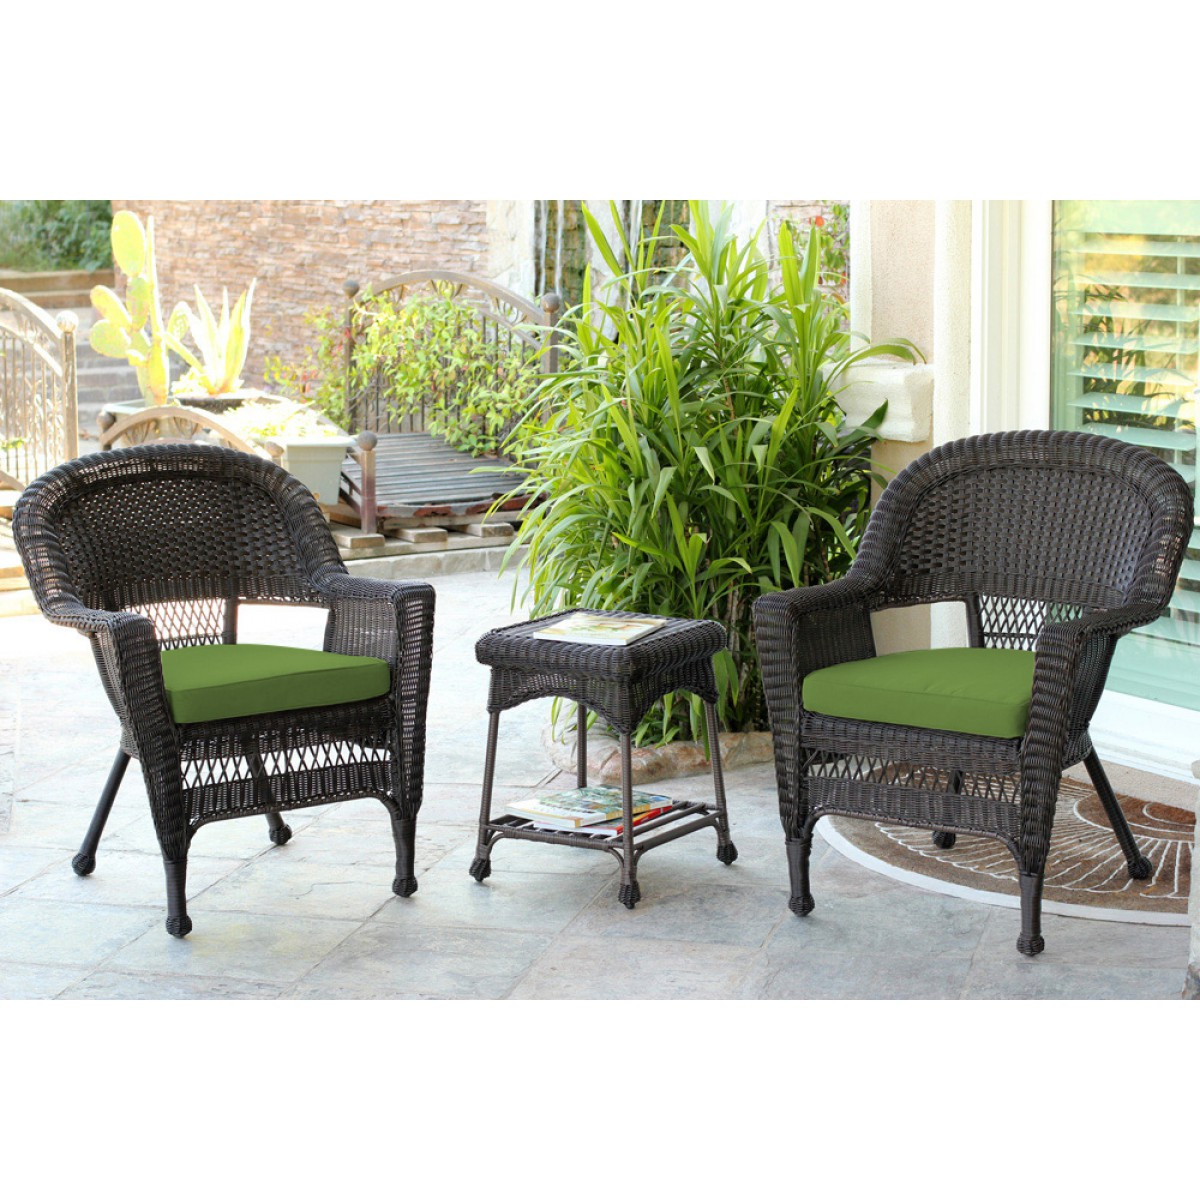 espresso wicker chair and end table set with hunter green chair cushion